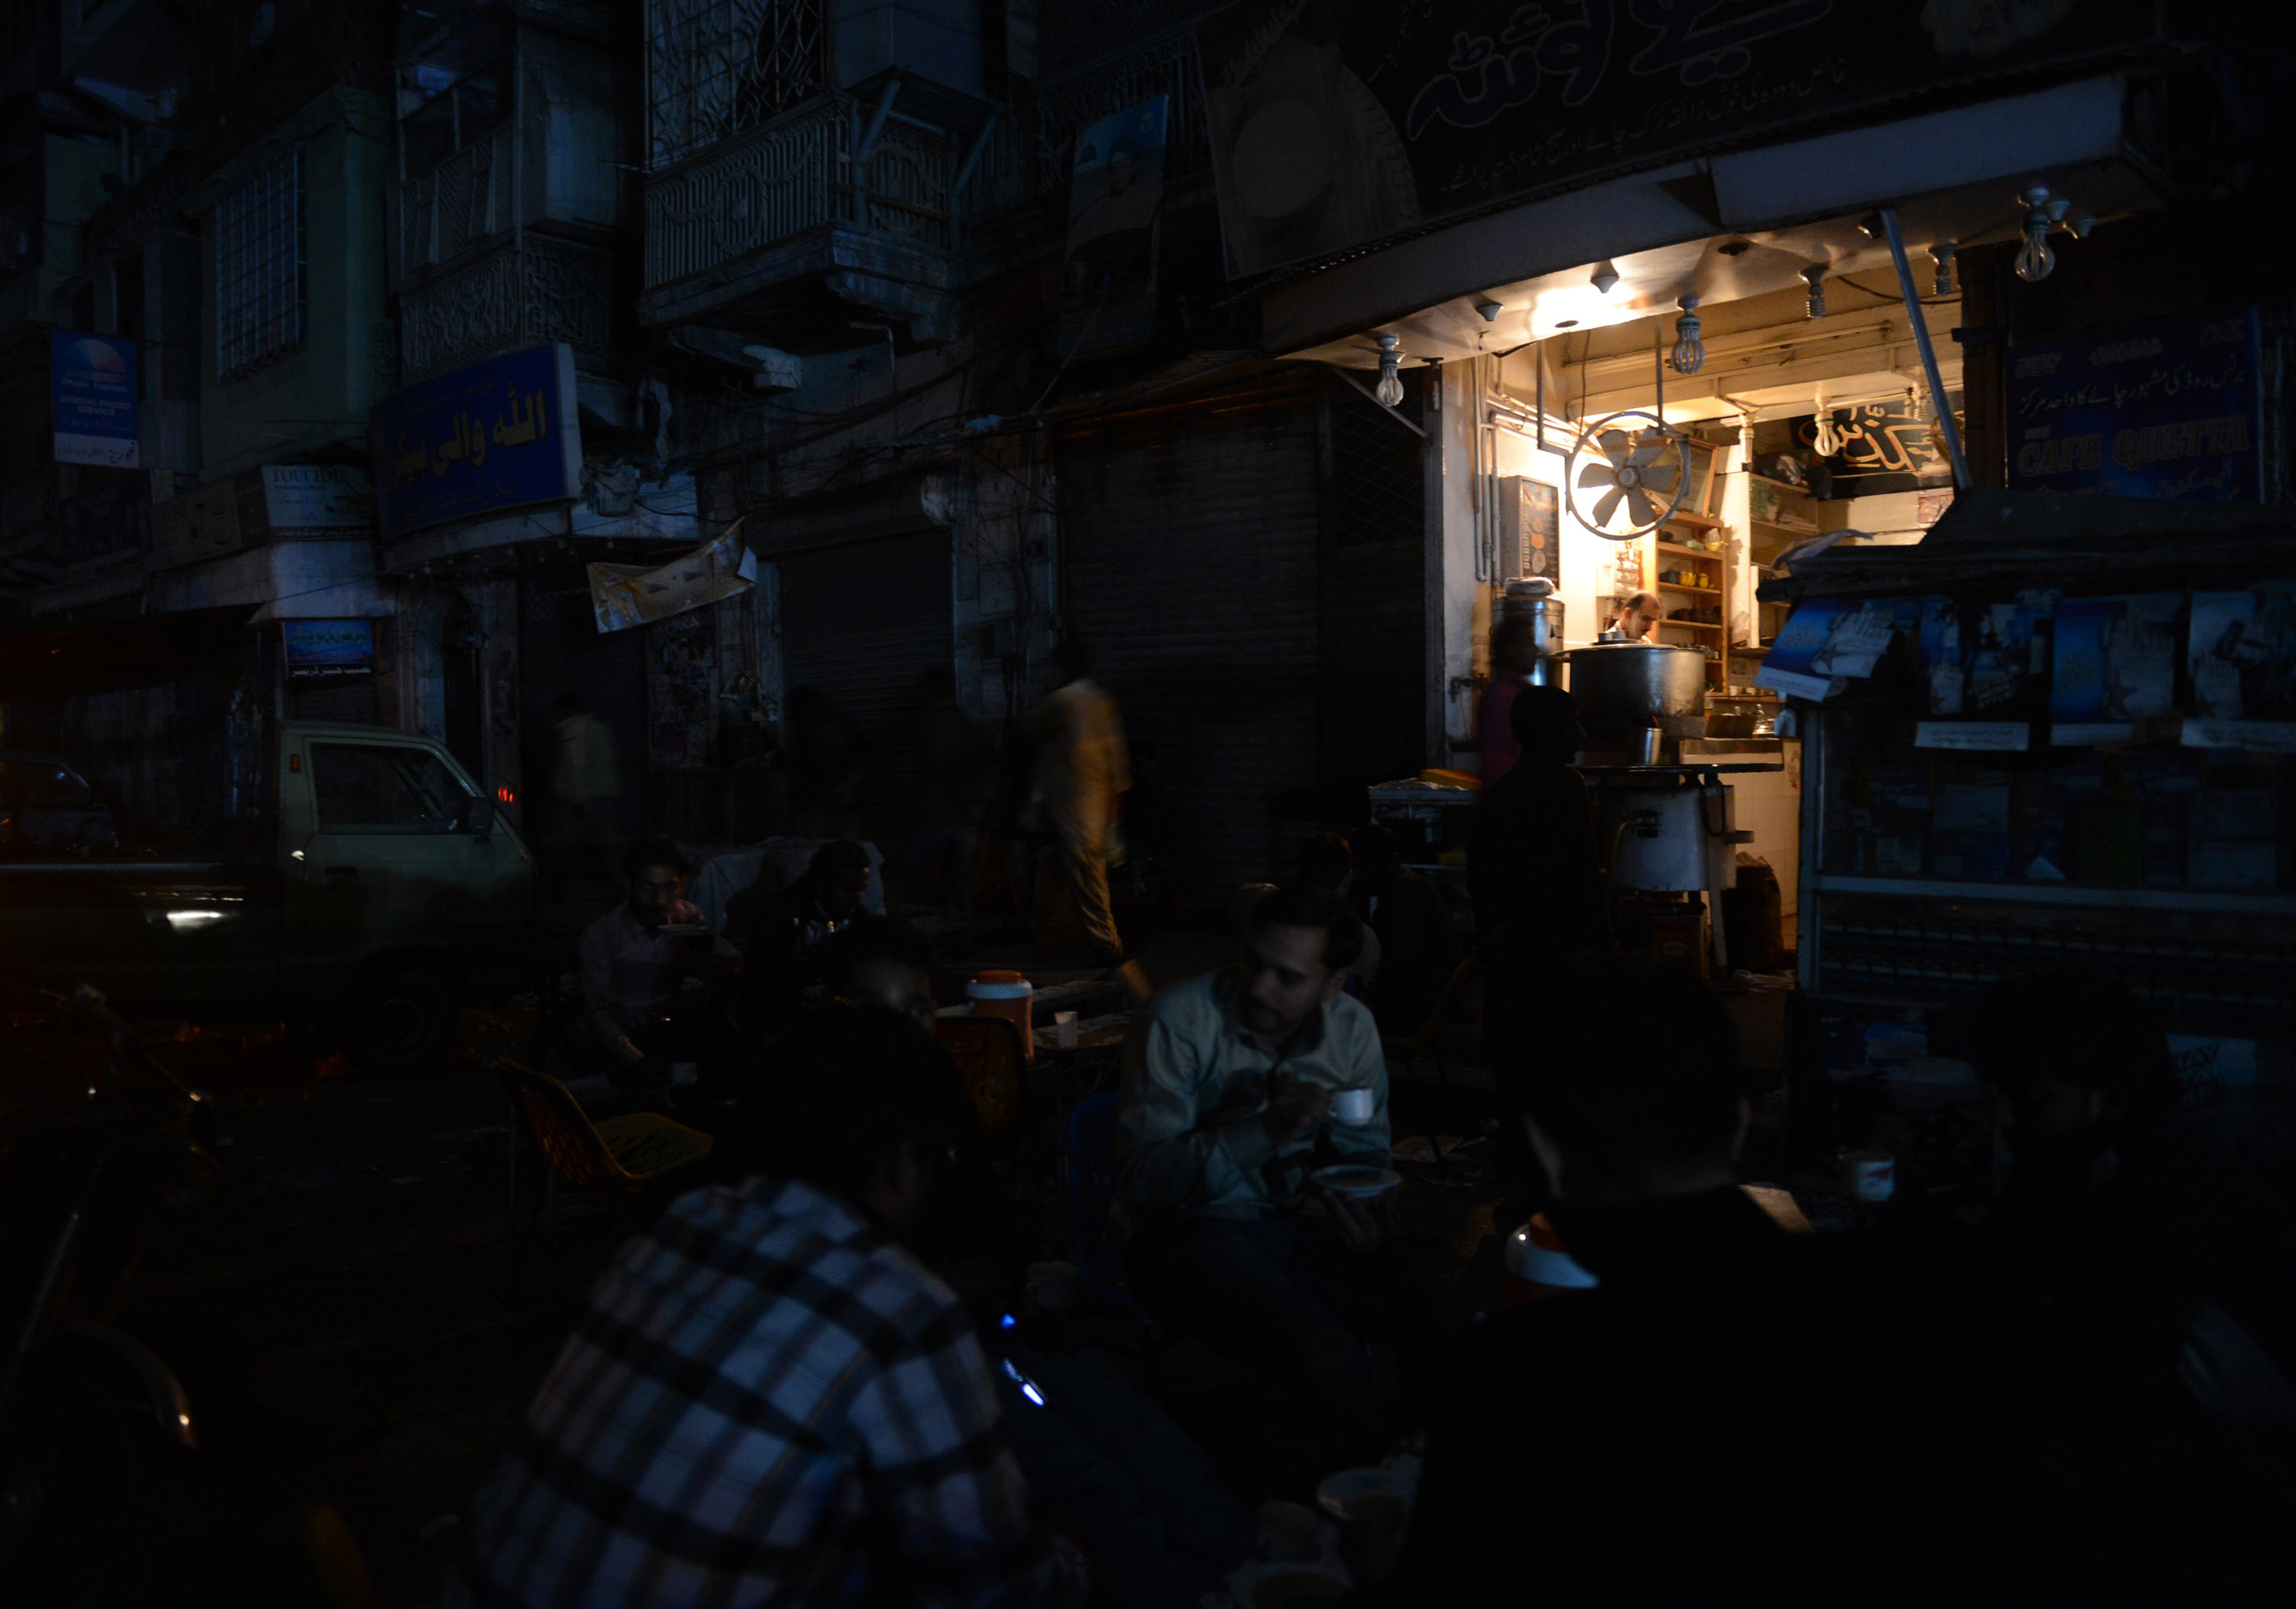 This picture taken on February 24, 2013 shows Pakistani people drinking tea outside a restaurant during a nationwide power blackout in Karachi.  Pakistan was hit by a nationwide blackout for more than two hours after the breakdown of a major plant caused power stations to stop working across the country, officials said on February 25.  AFP PHOTO/Asif HASSAN